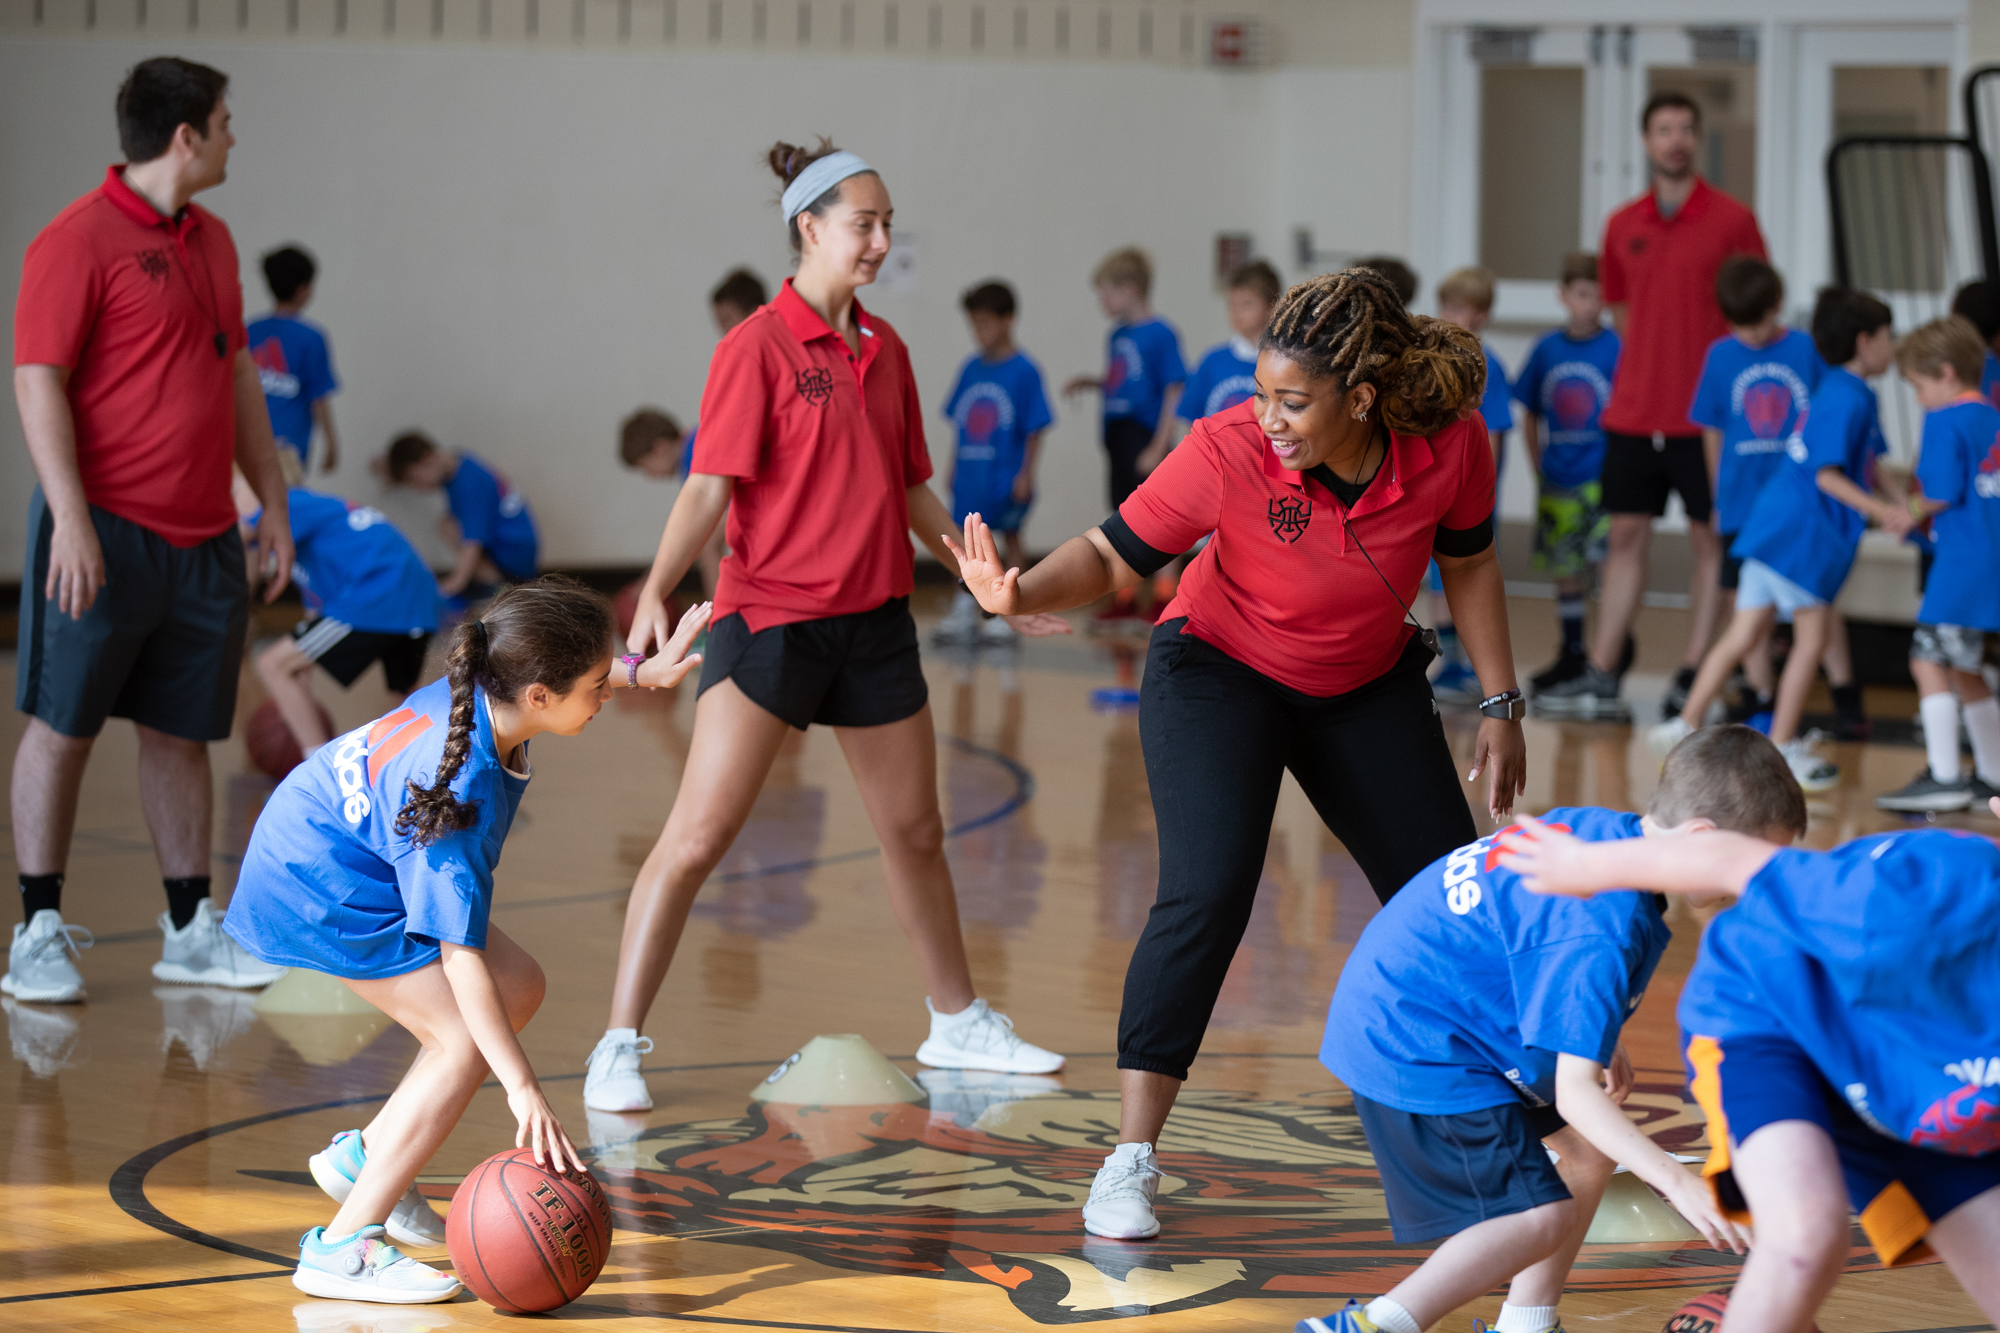 190601-donovan-mitchell-basketball-camp-grade1-4-WH-3232 copy.jpg